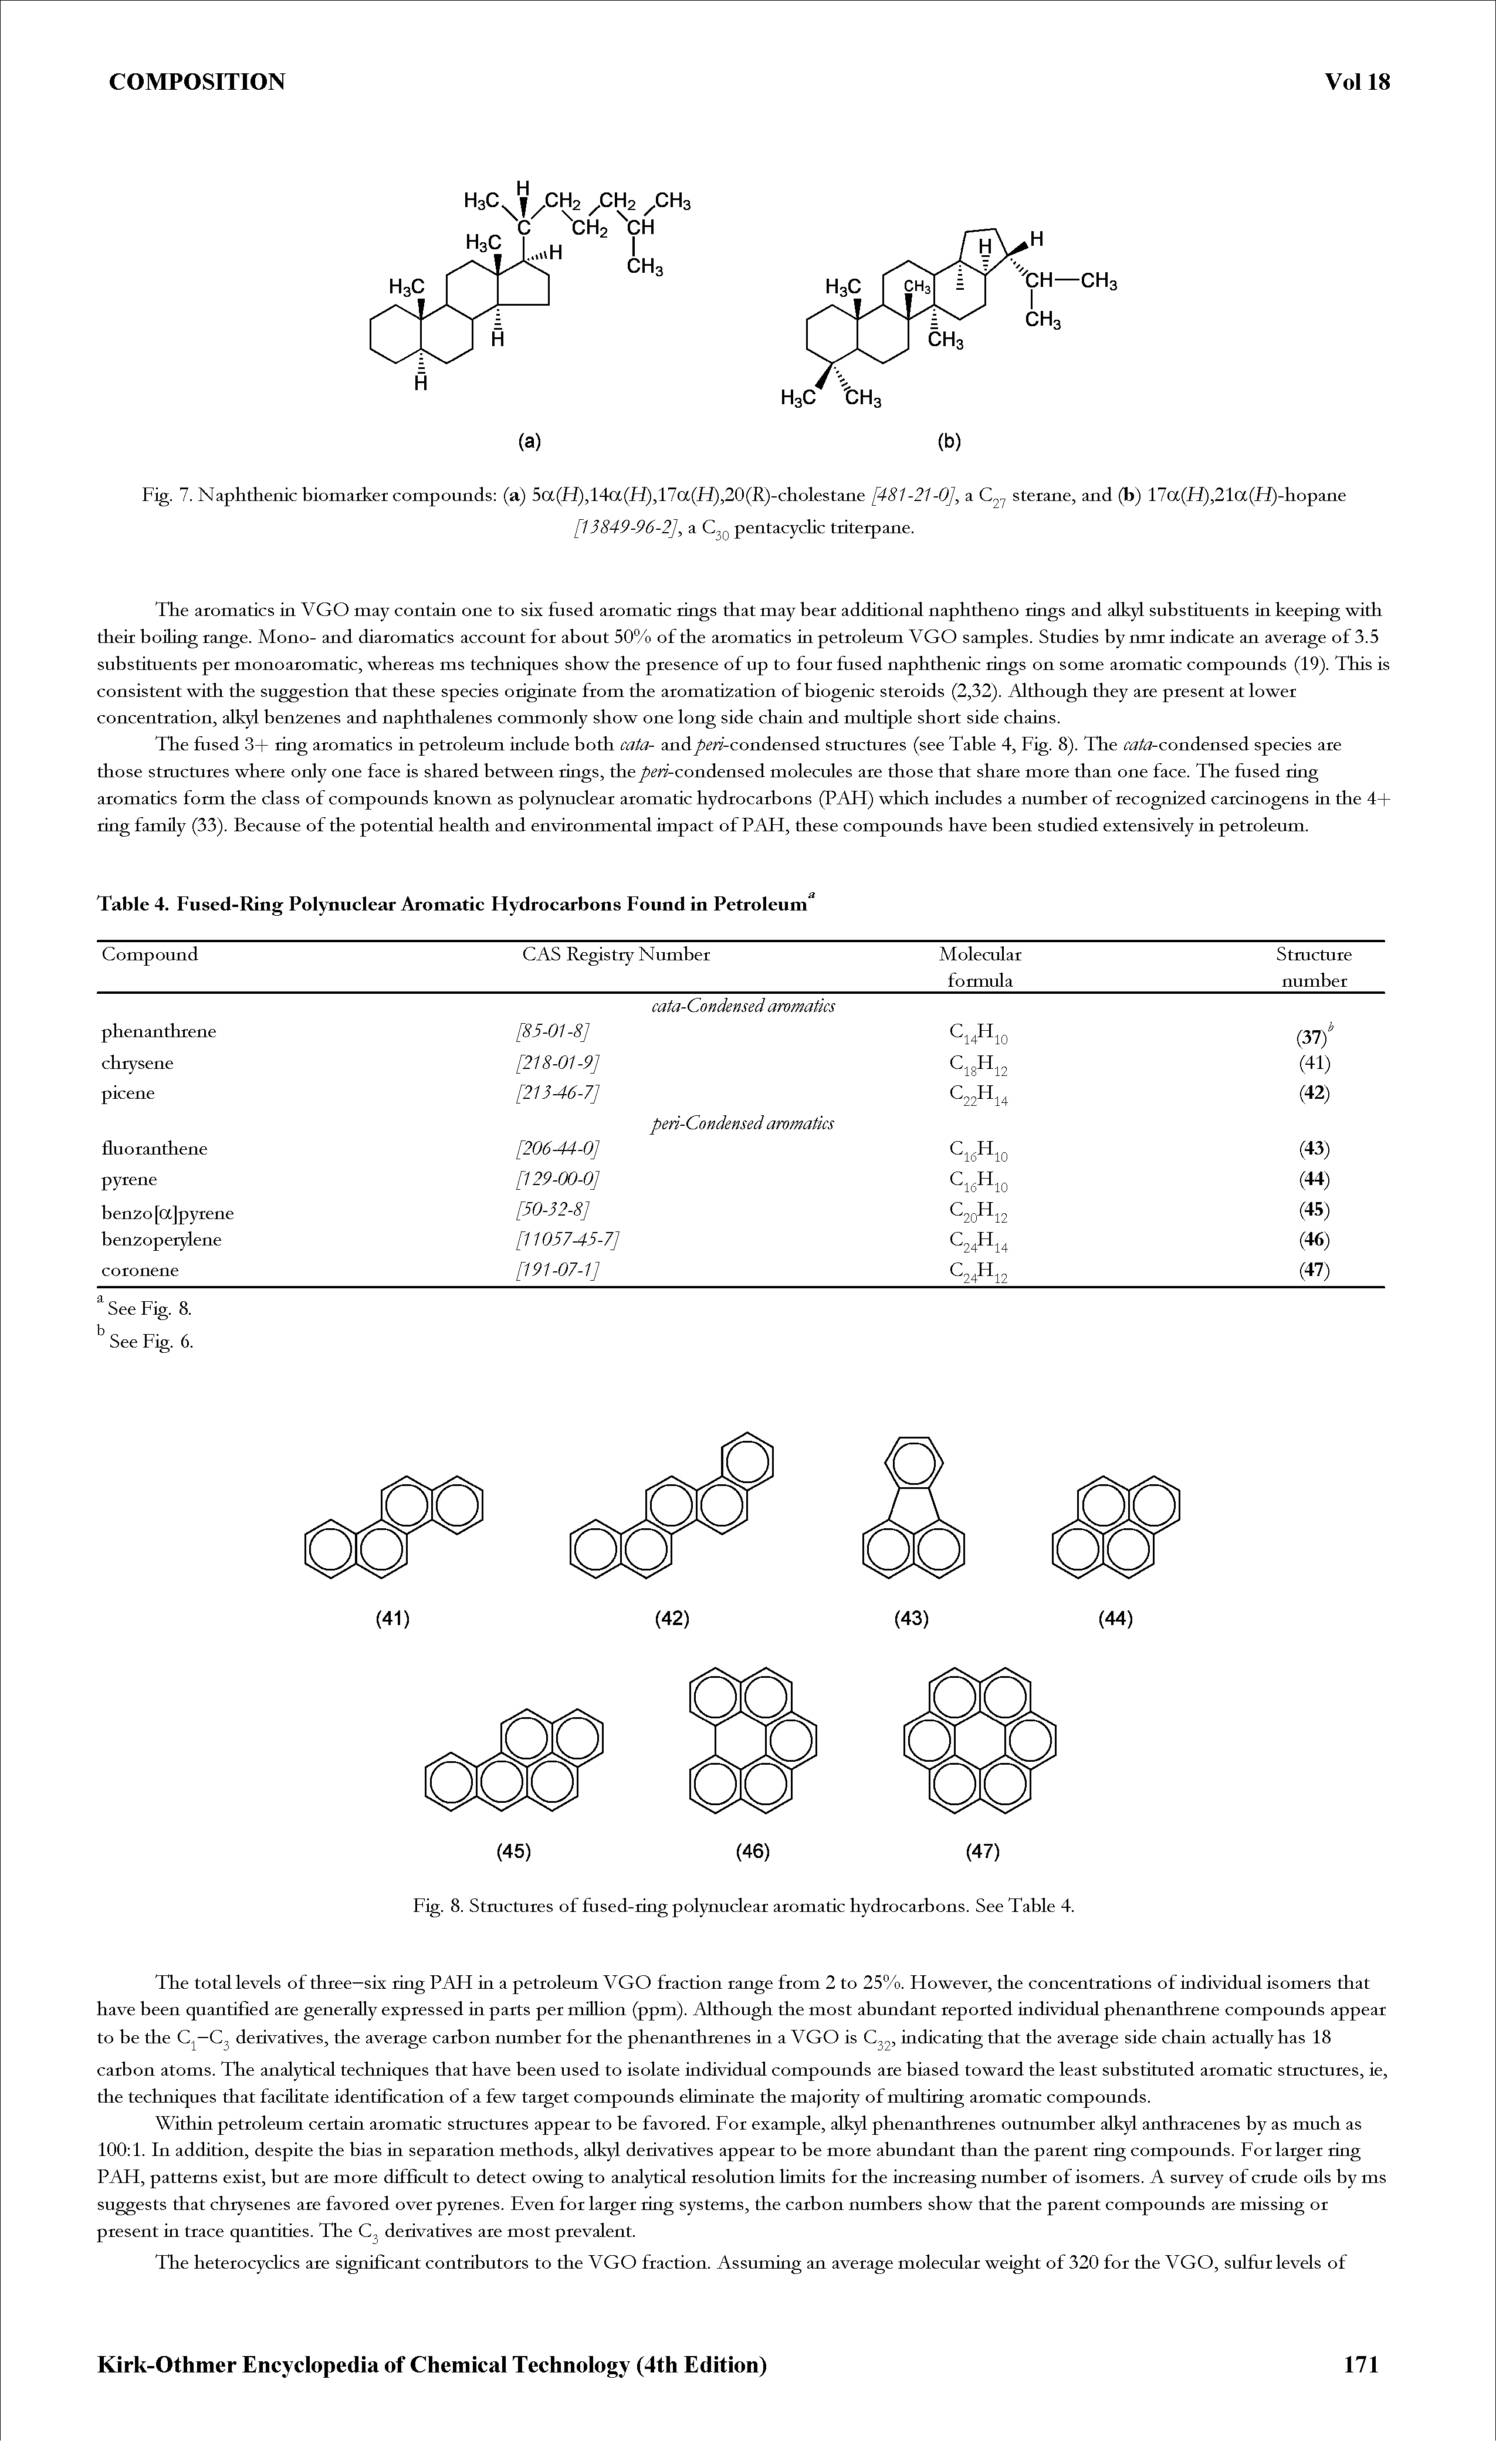 "Table 4. <a href=""/info/fused_rings"">Fused-Ring</a> <a href=""/info/polynuclear_aromatic_hydrocarbons"">Polynuclear Aromatic Hydrocarbons</a> Found in Petroleum"